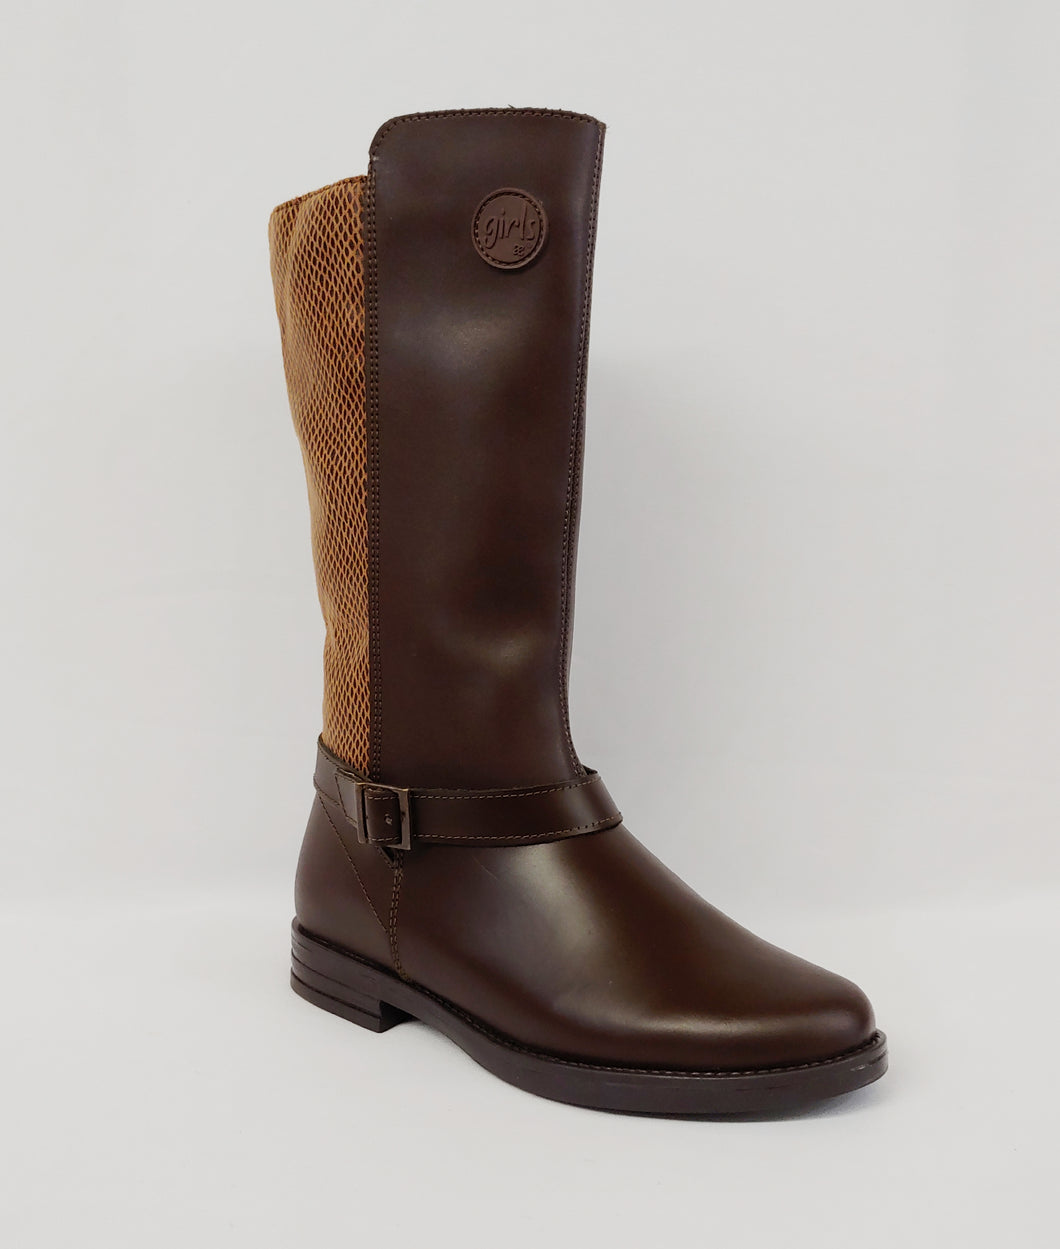 Andrea® Girls Tall Brown Boots